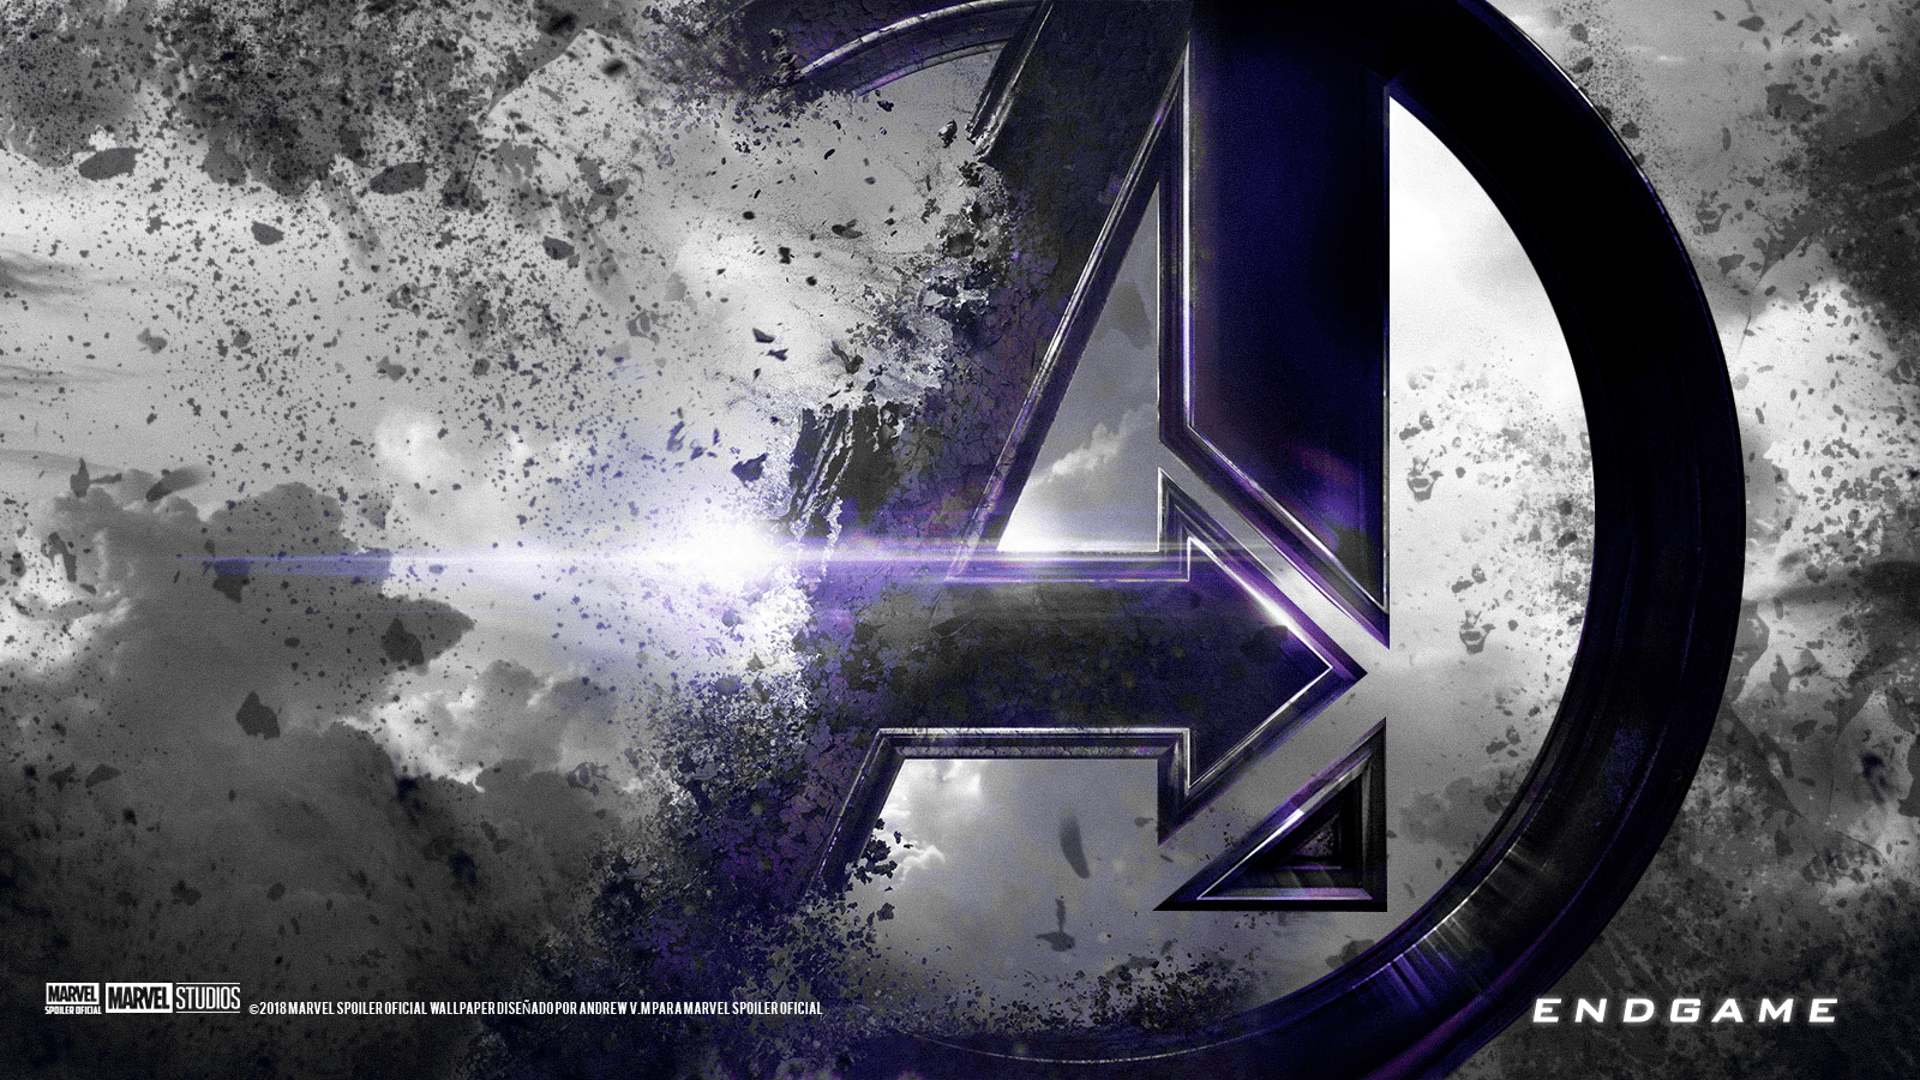 avengers endgame logo desktop wallpapers wallpaper cave desktop wallpapers wallpaper cave